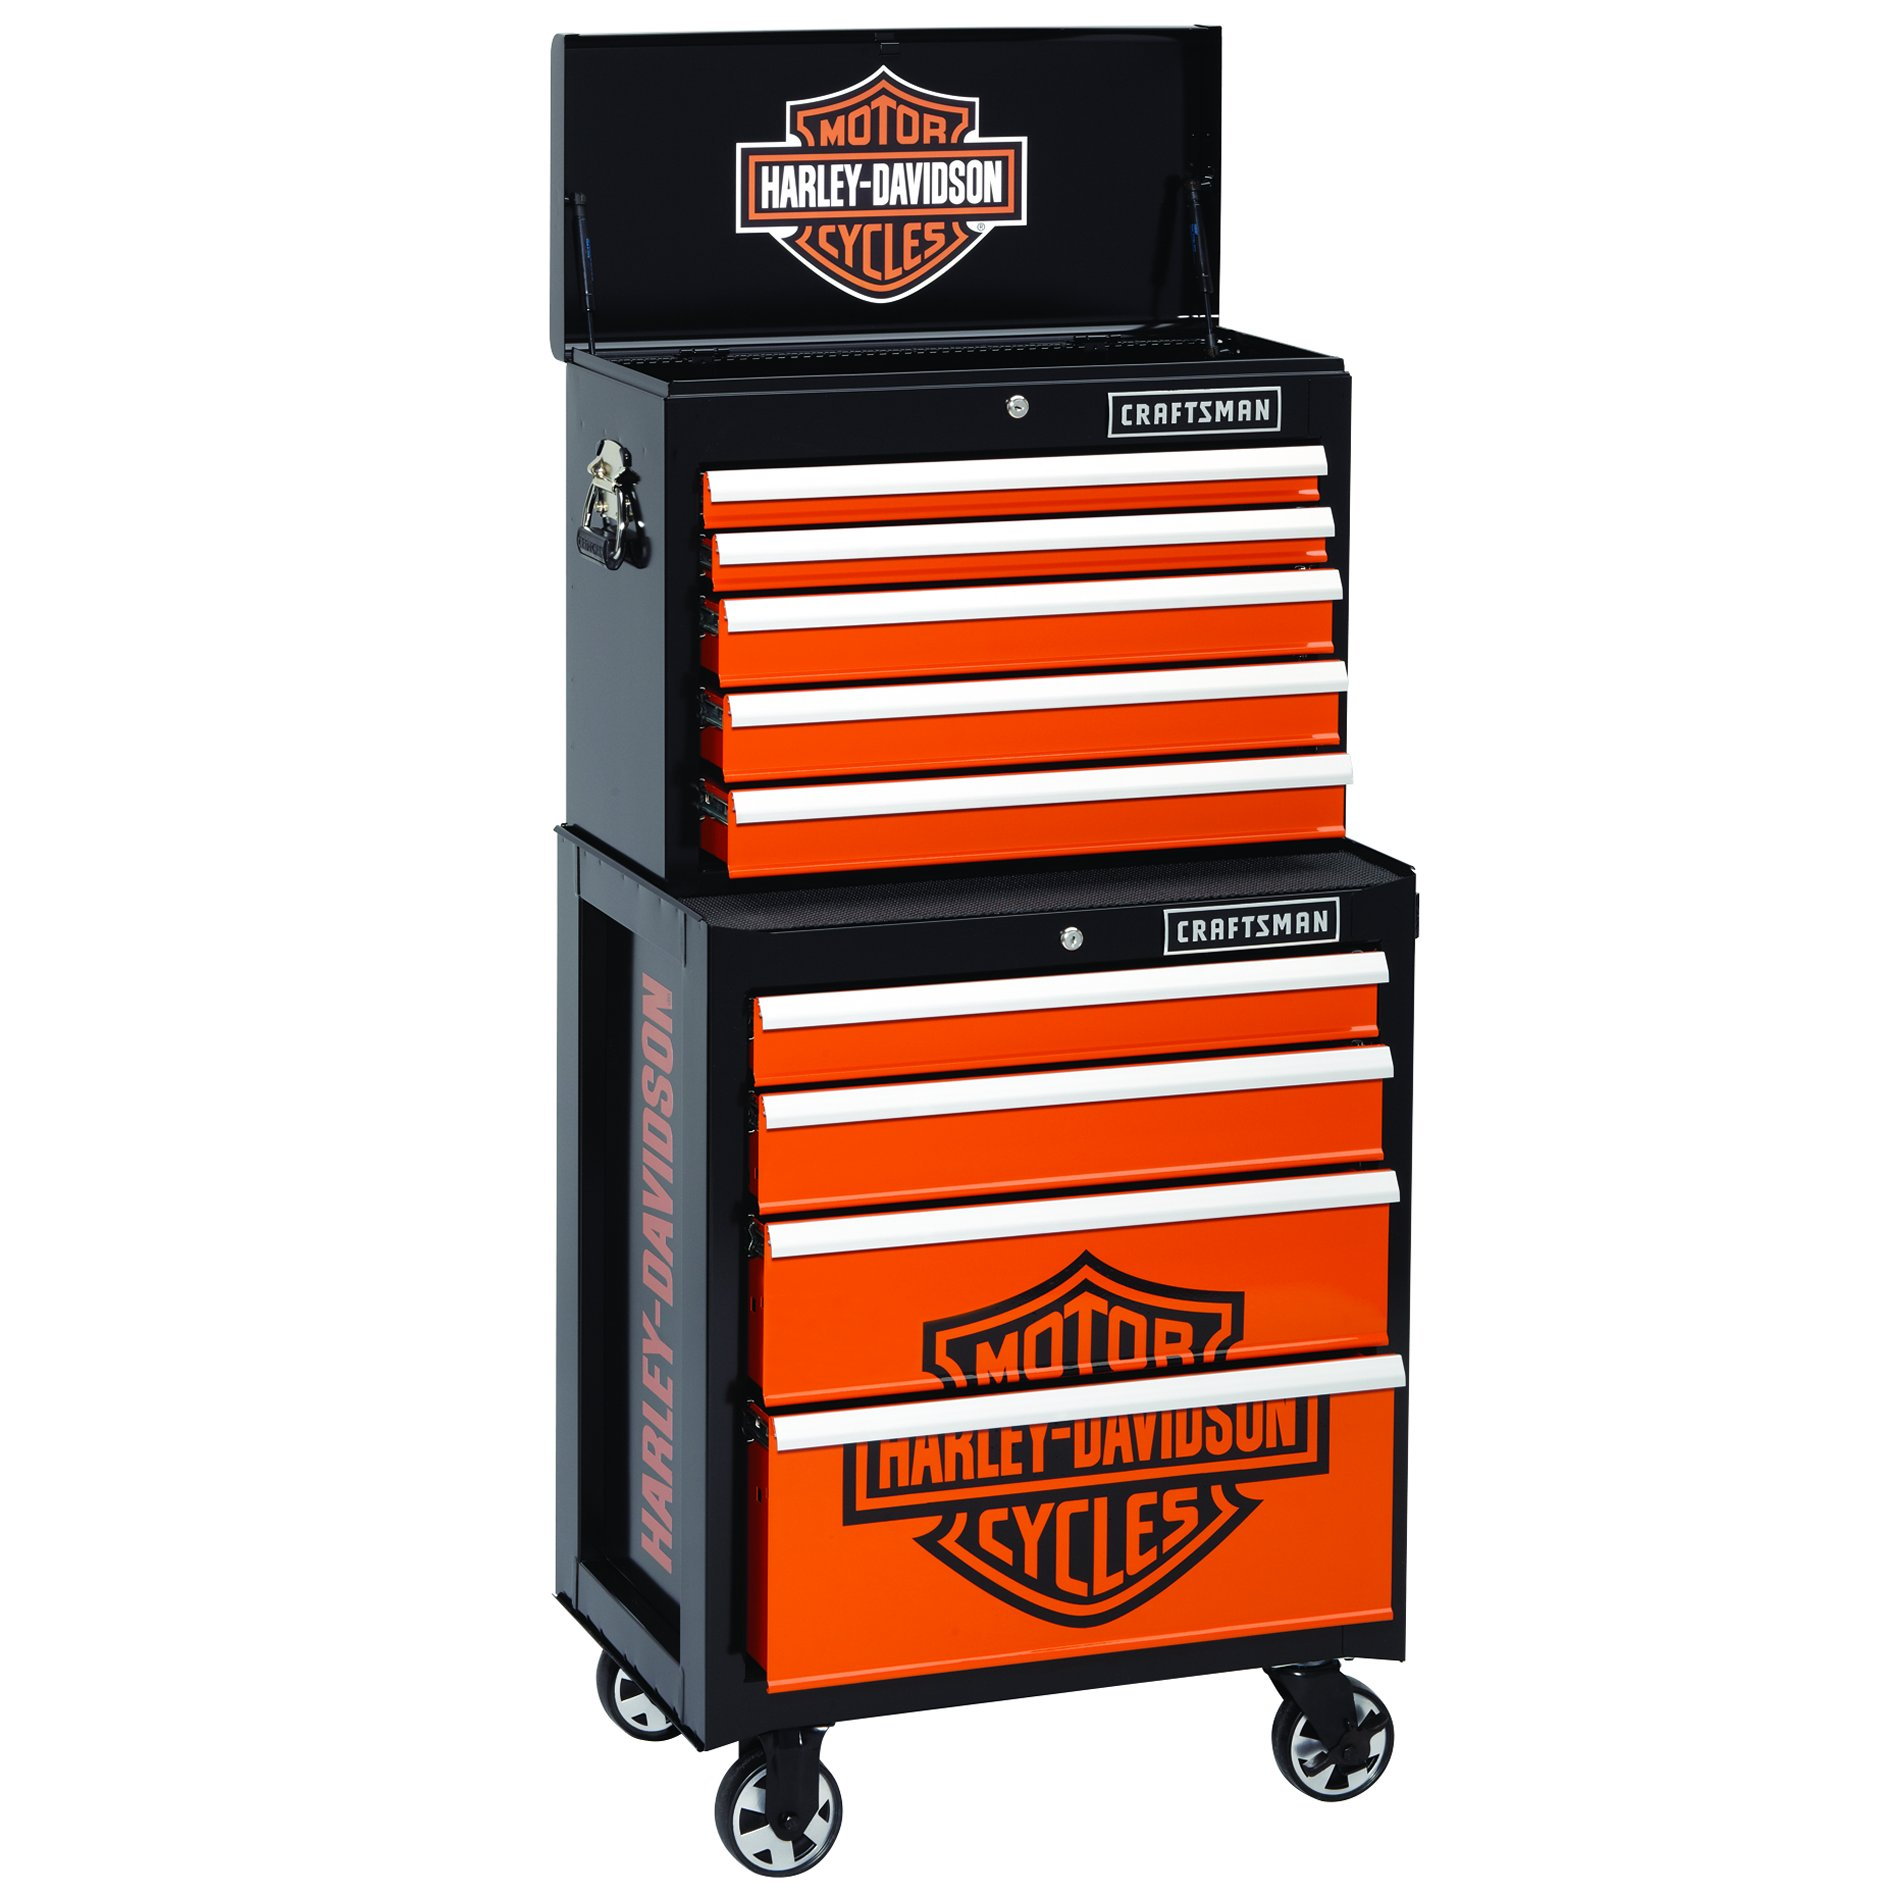 Craftsman® and Harley Davidson® Tool Storage Combination (Items Sold Separately)